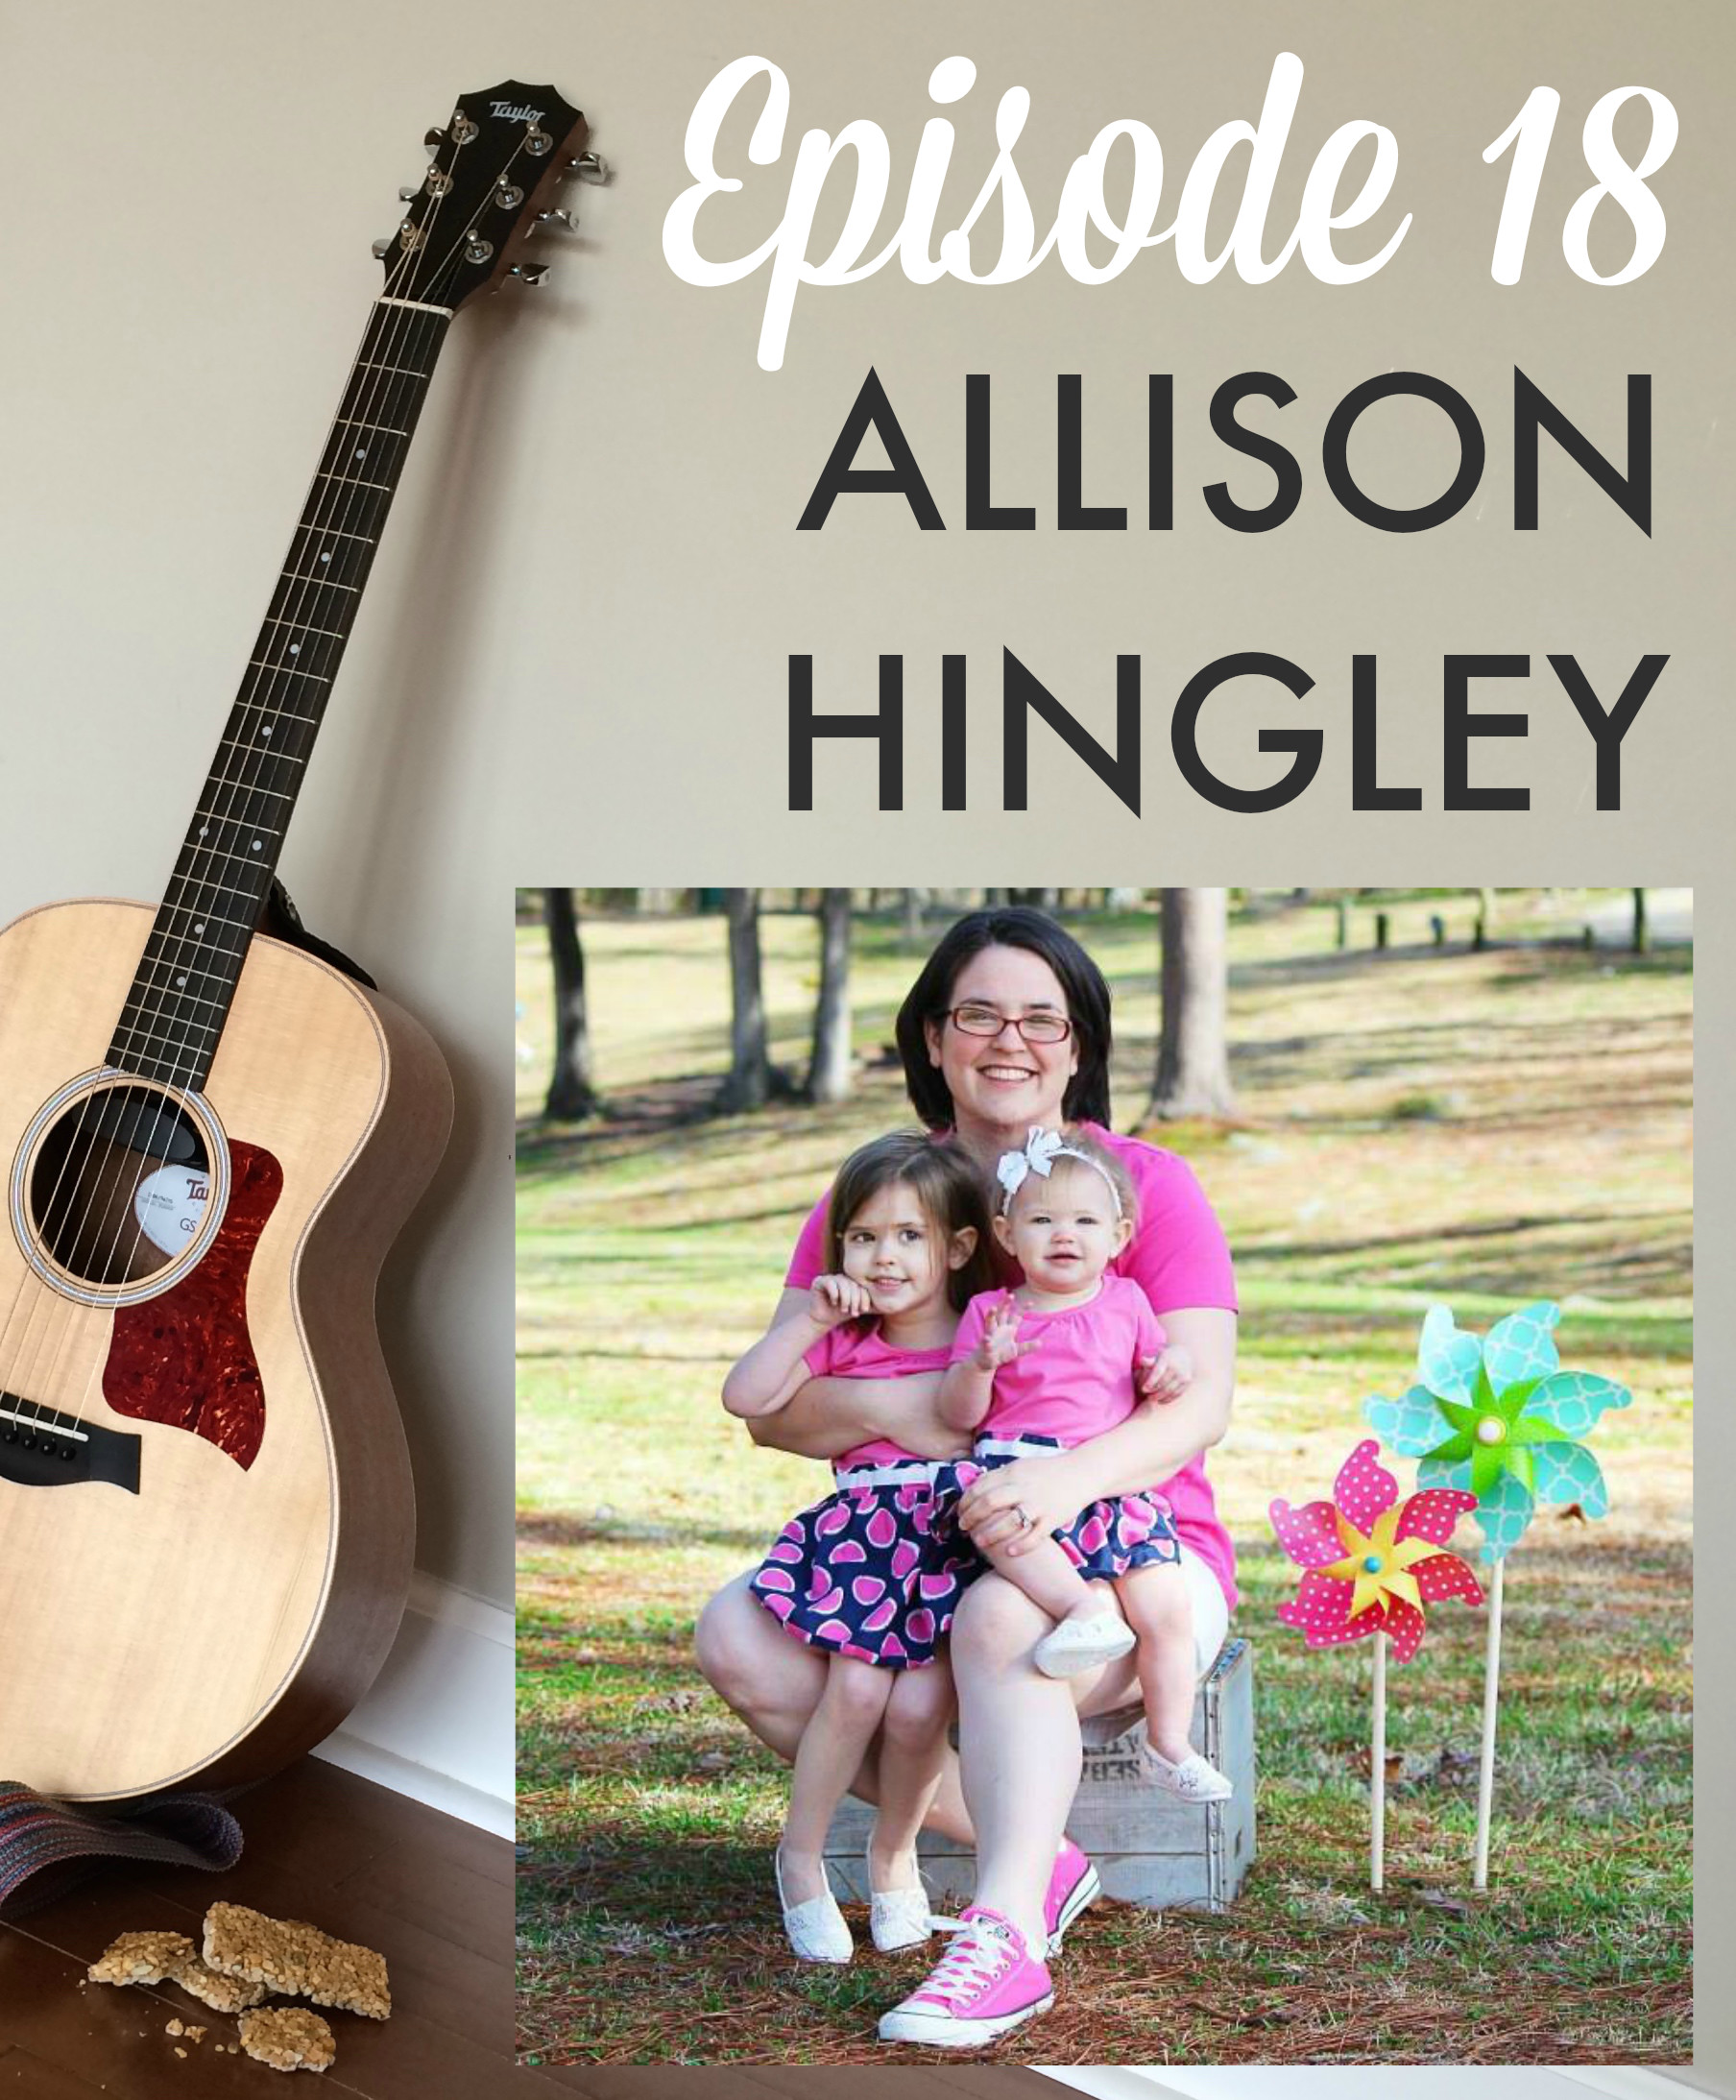 GGB Episode 18: Allison Hingley